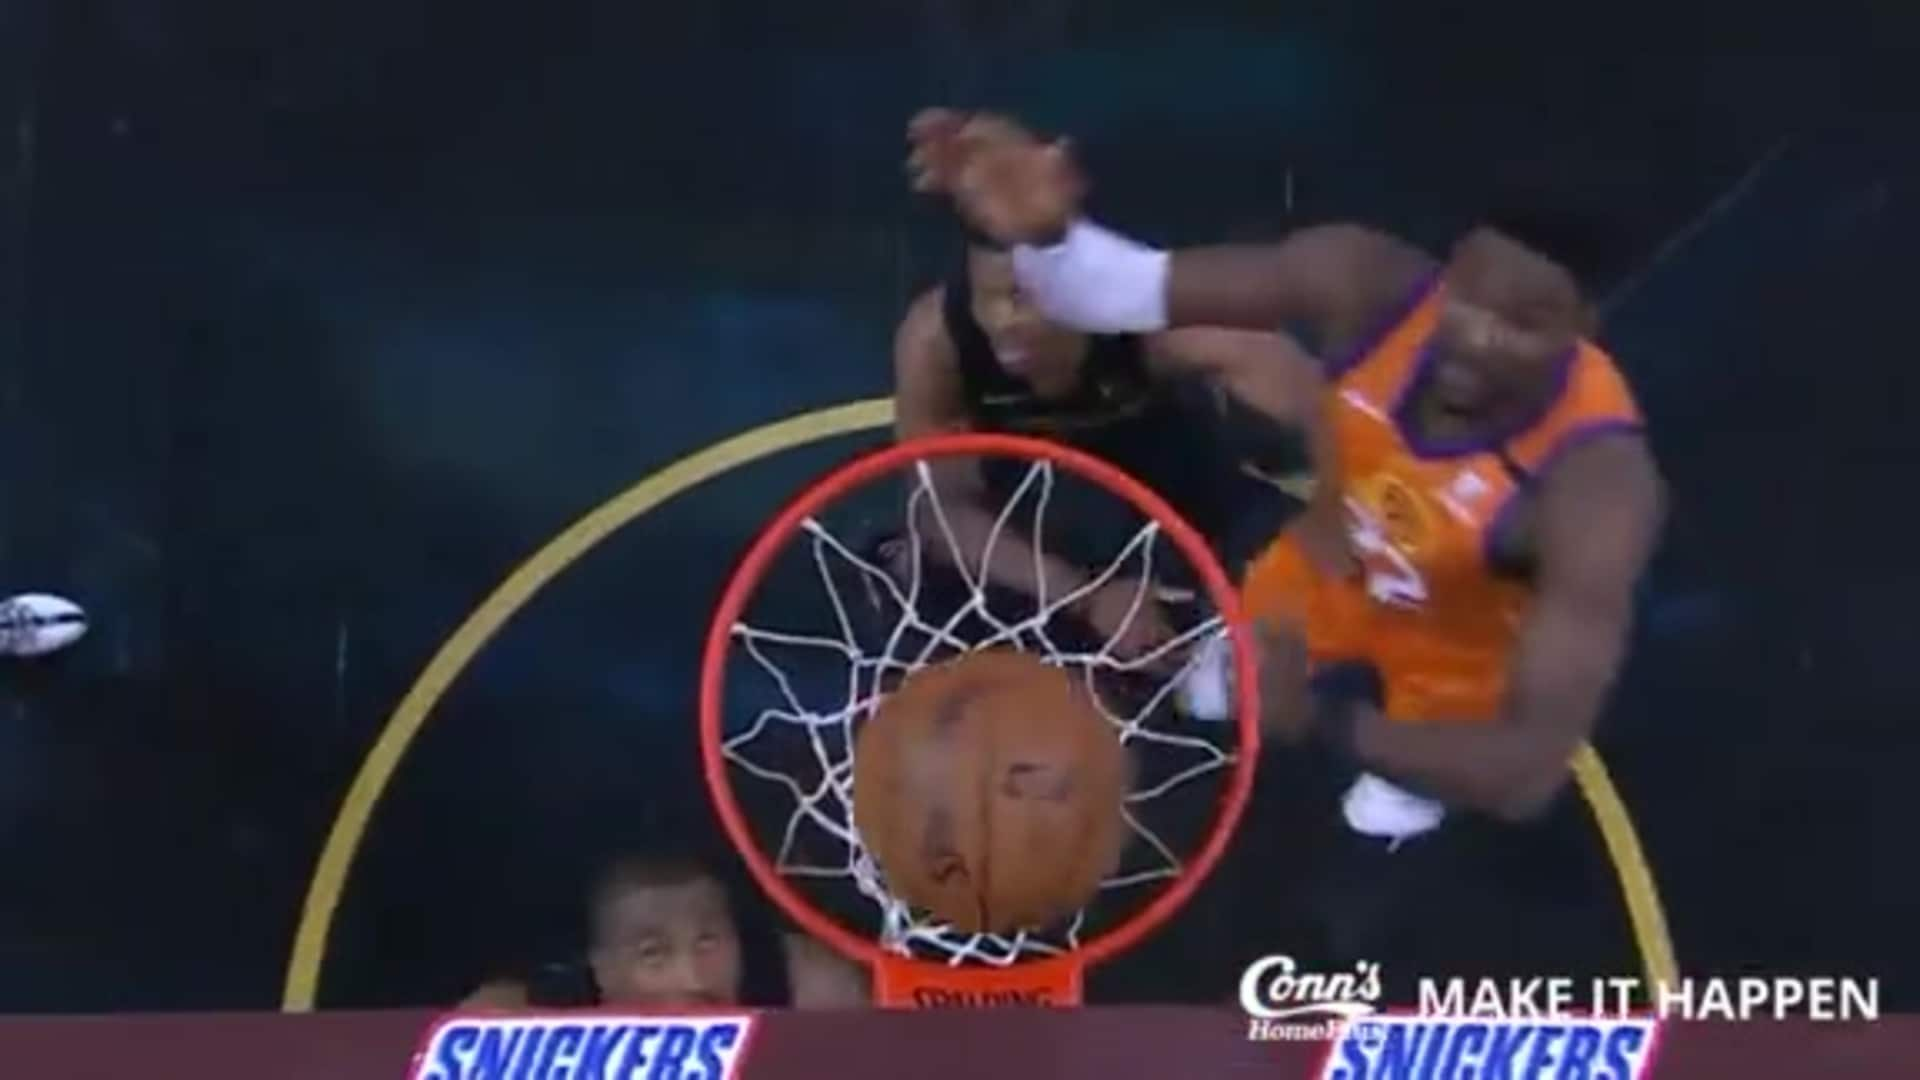 Conn's Make it Happen Play: Booker Cuts to the Basket